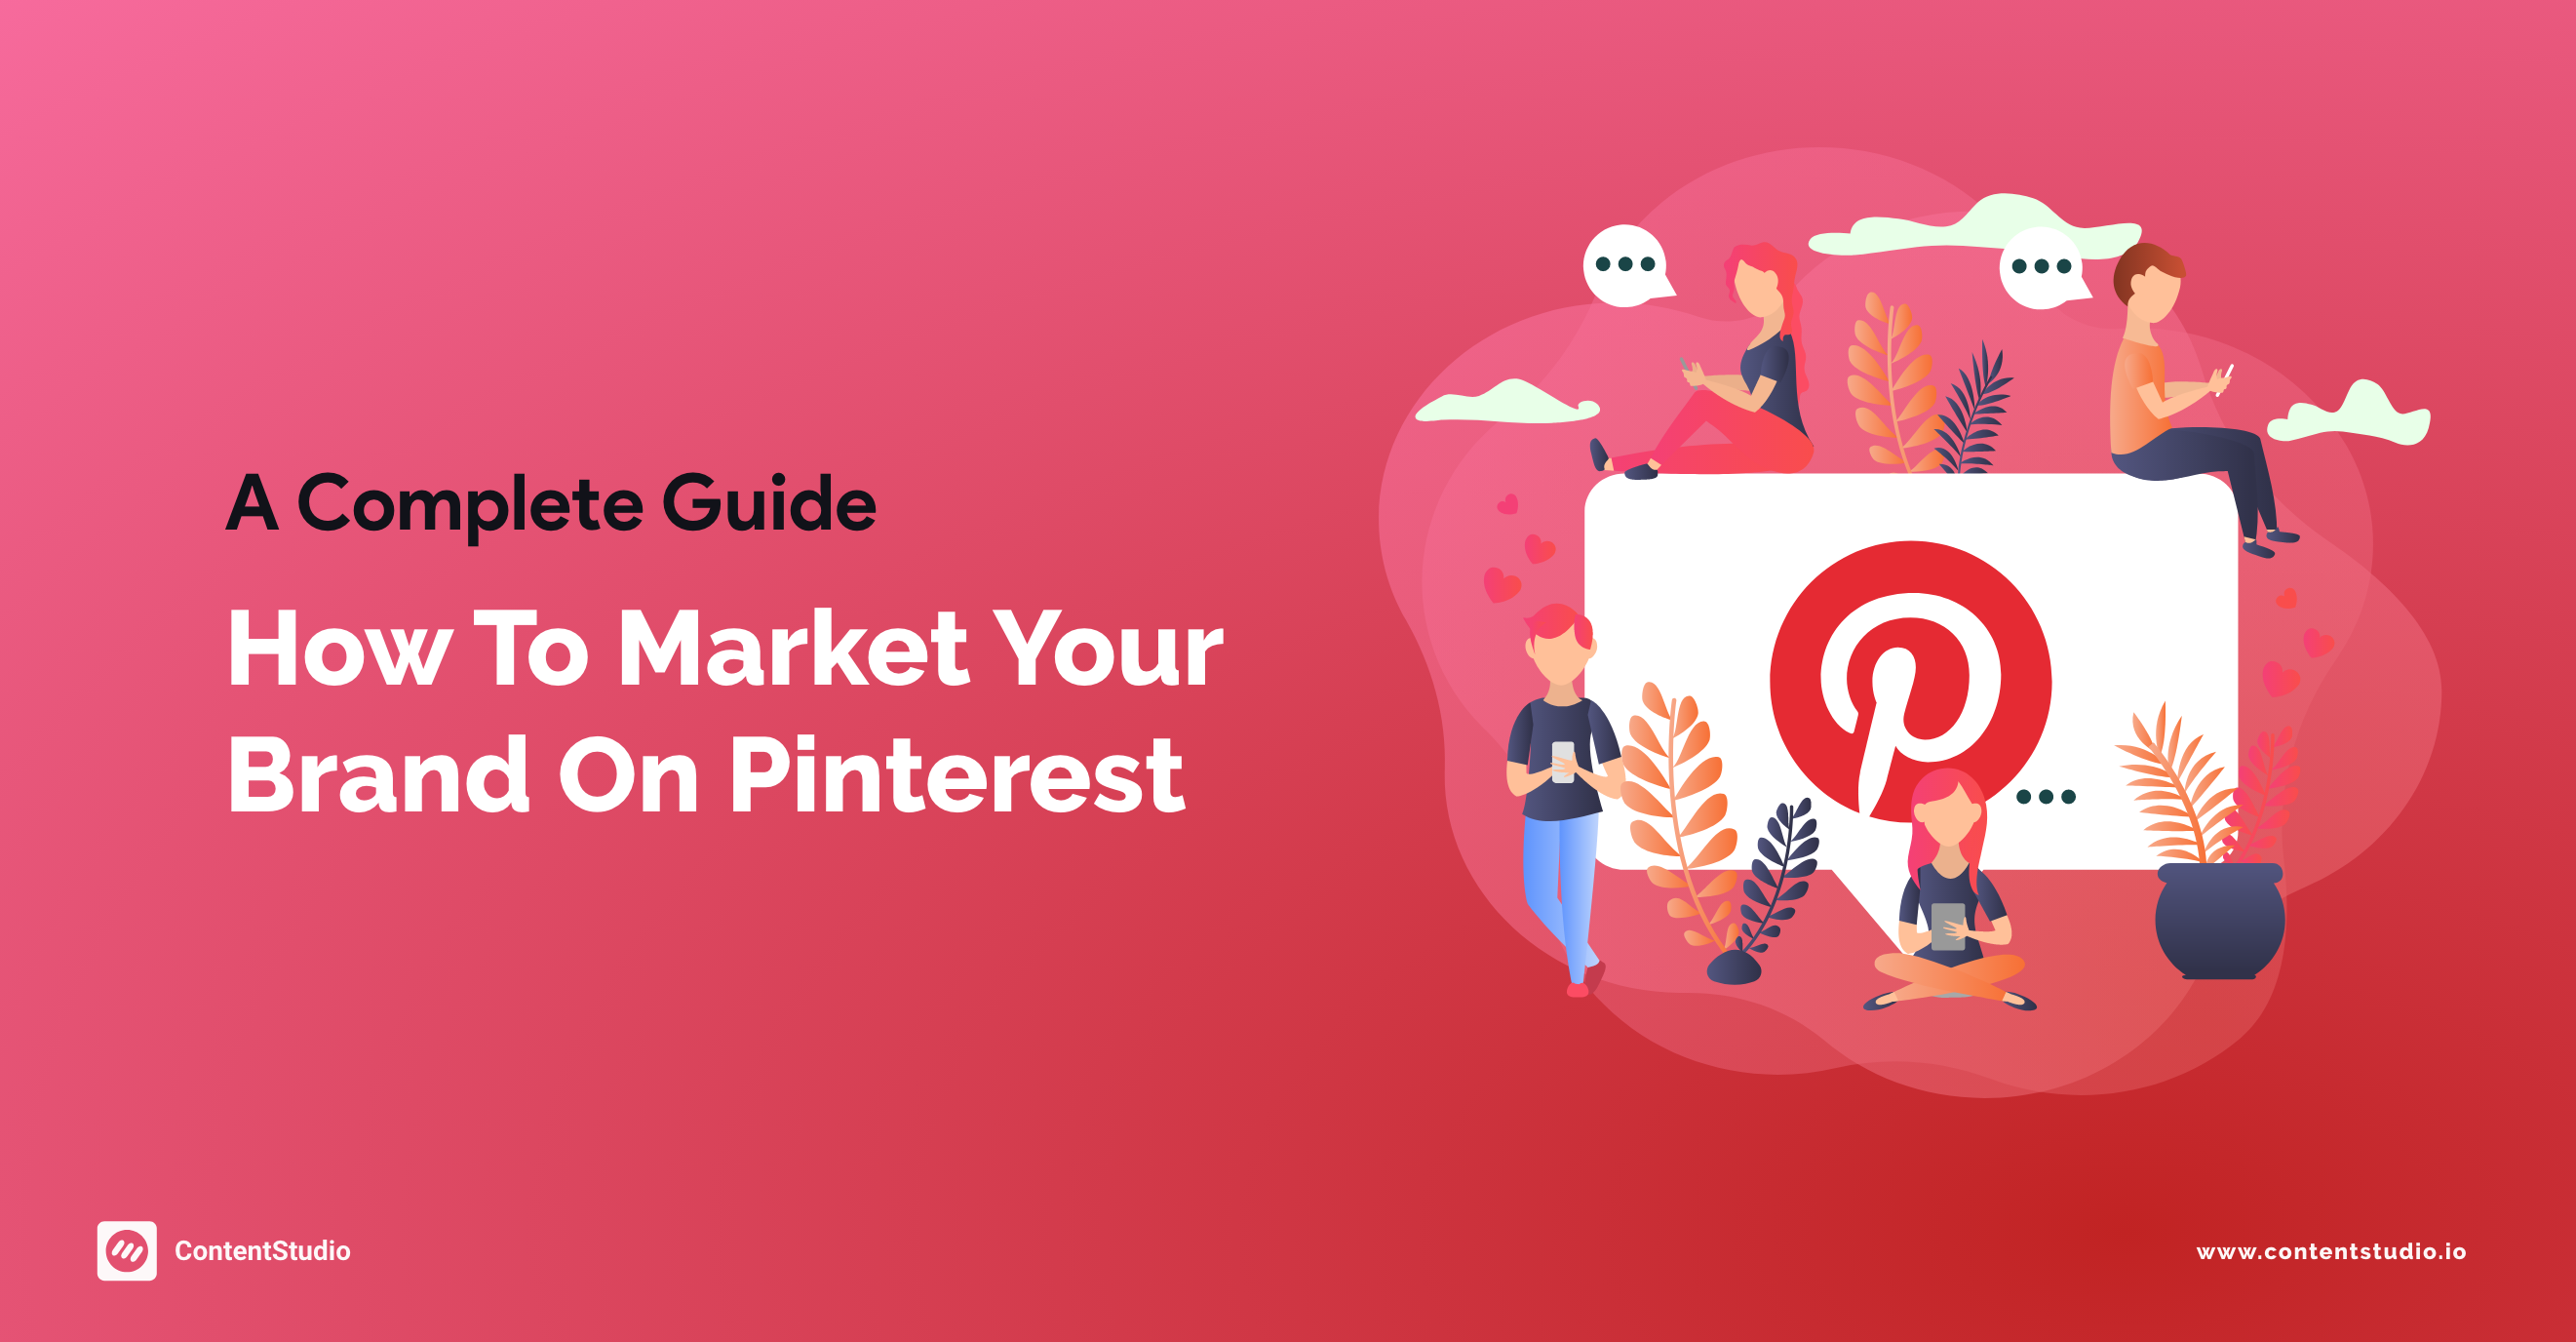 market your brand on Pinterest